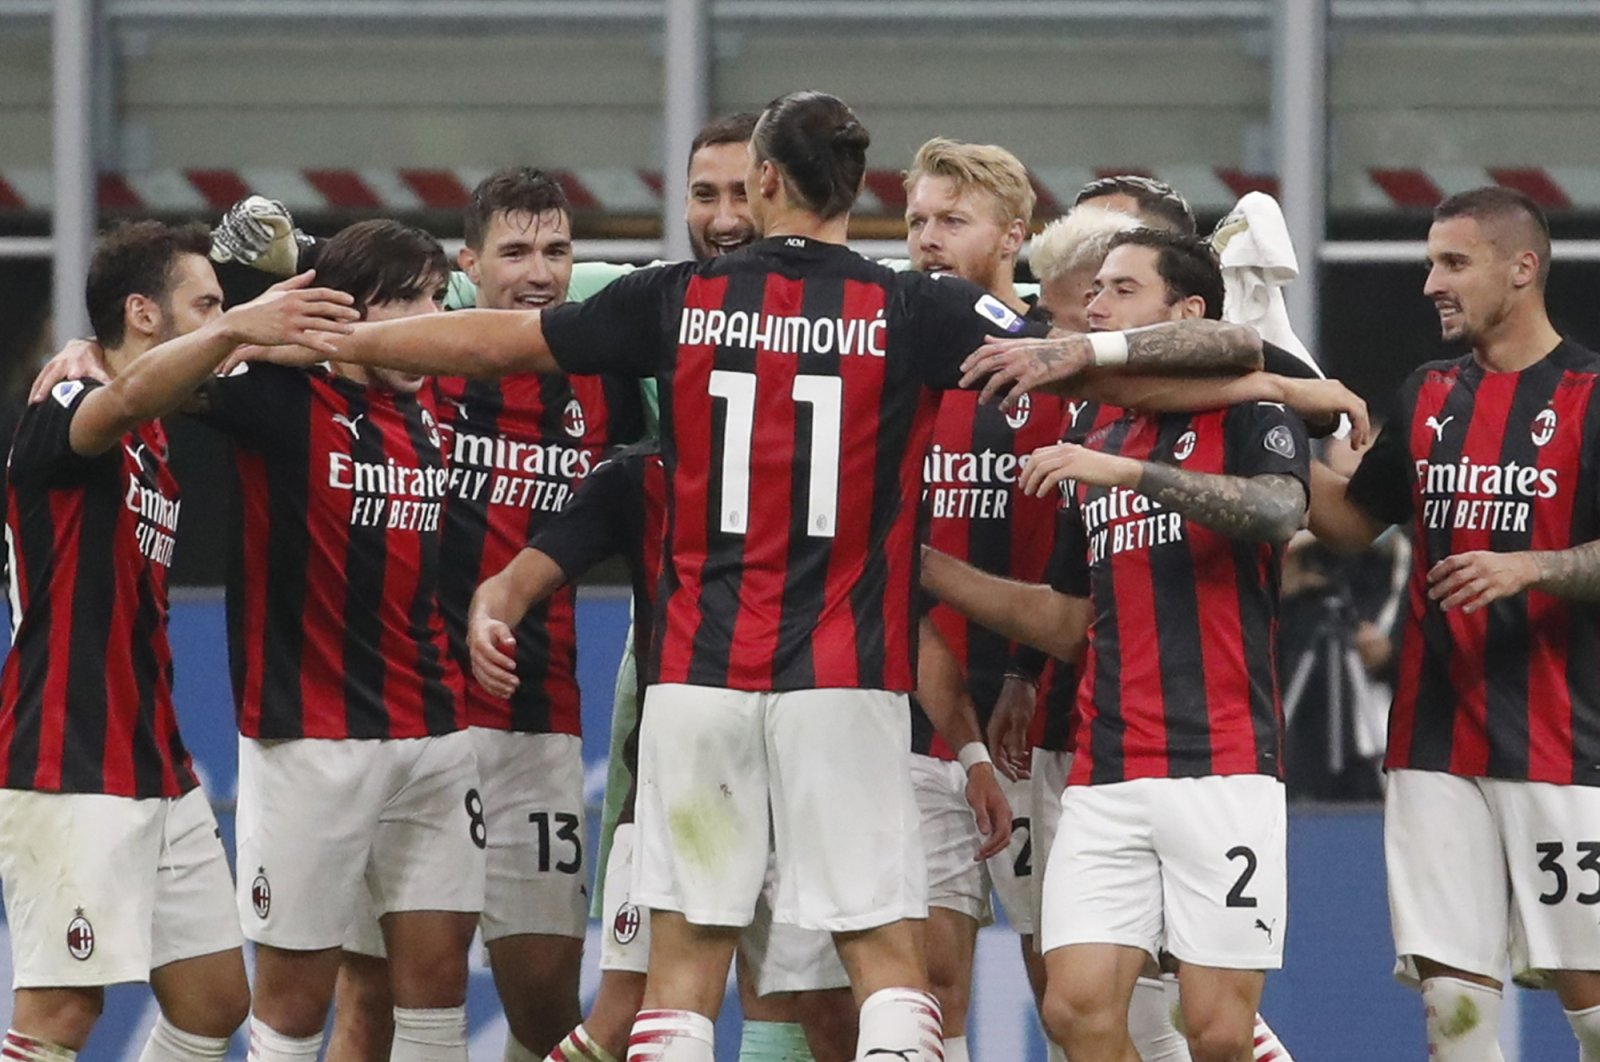 AC Milan's Zlatan Ibrahimovic embraces his teammates at the end of a Serie A match against Inter Milan at the San Siro Stadium, in Milan, Italy, Oct. 17, 2020. (AP Photo)